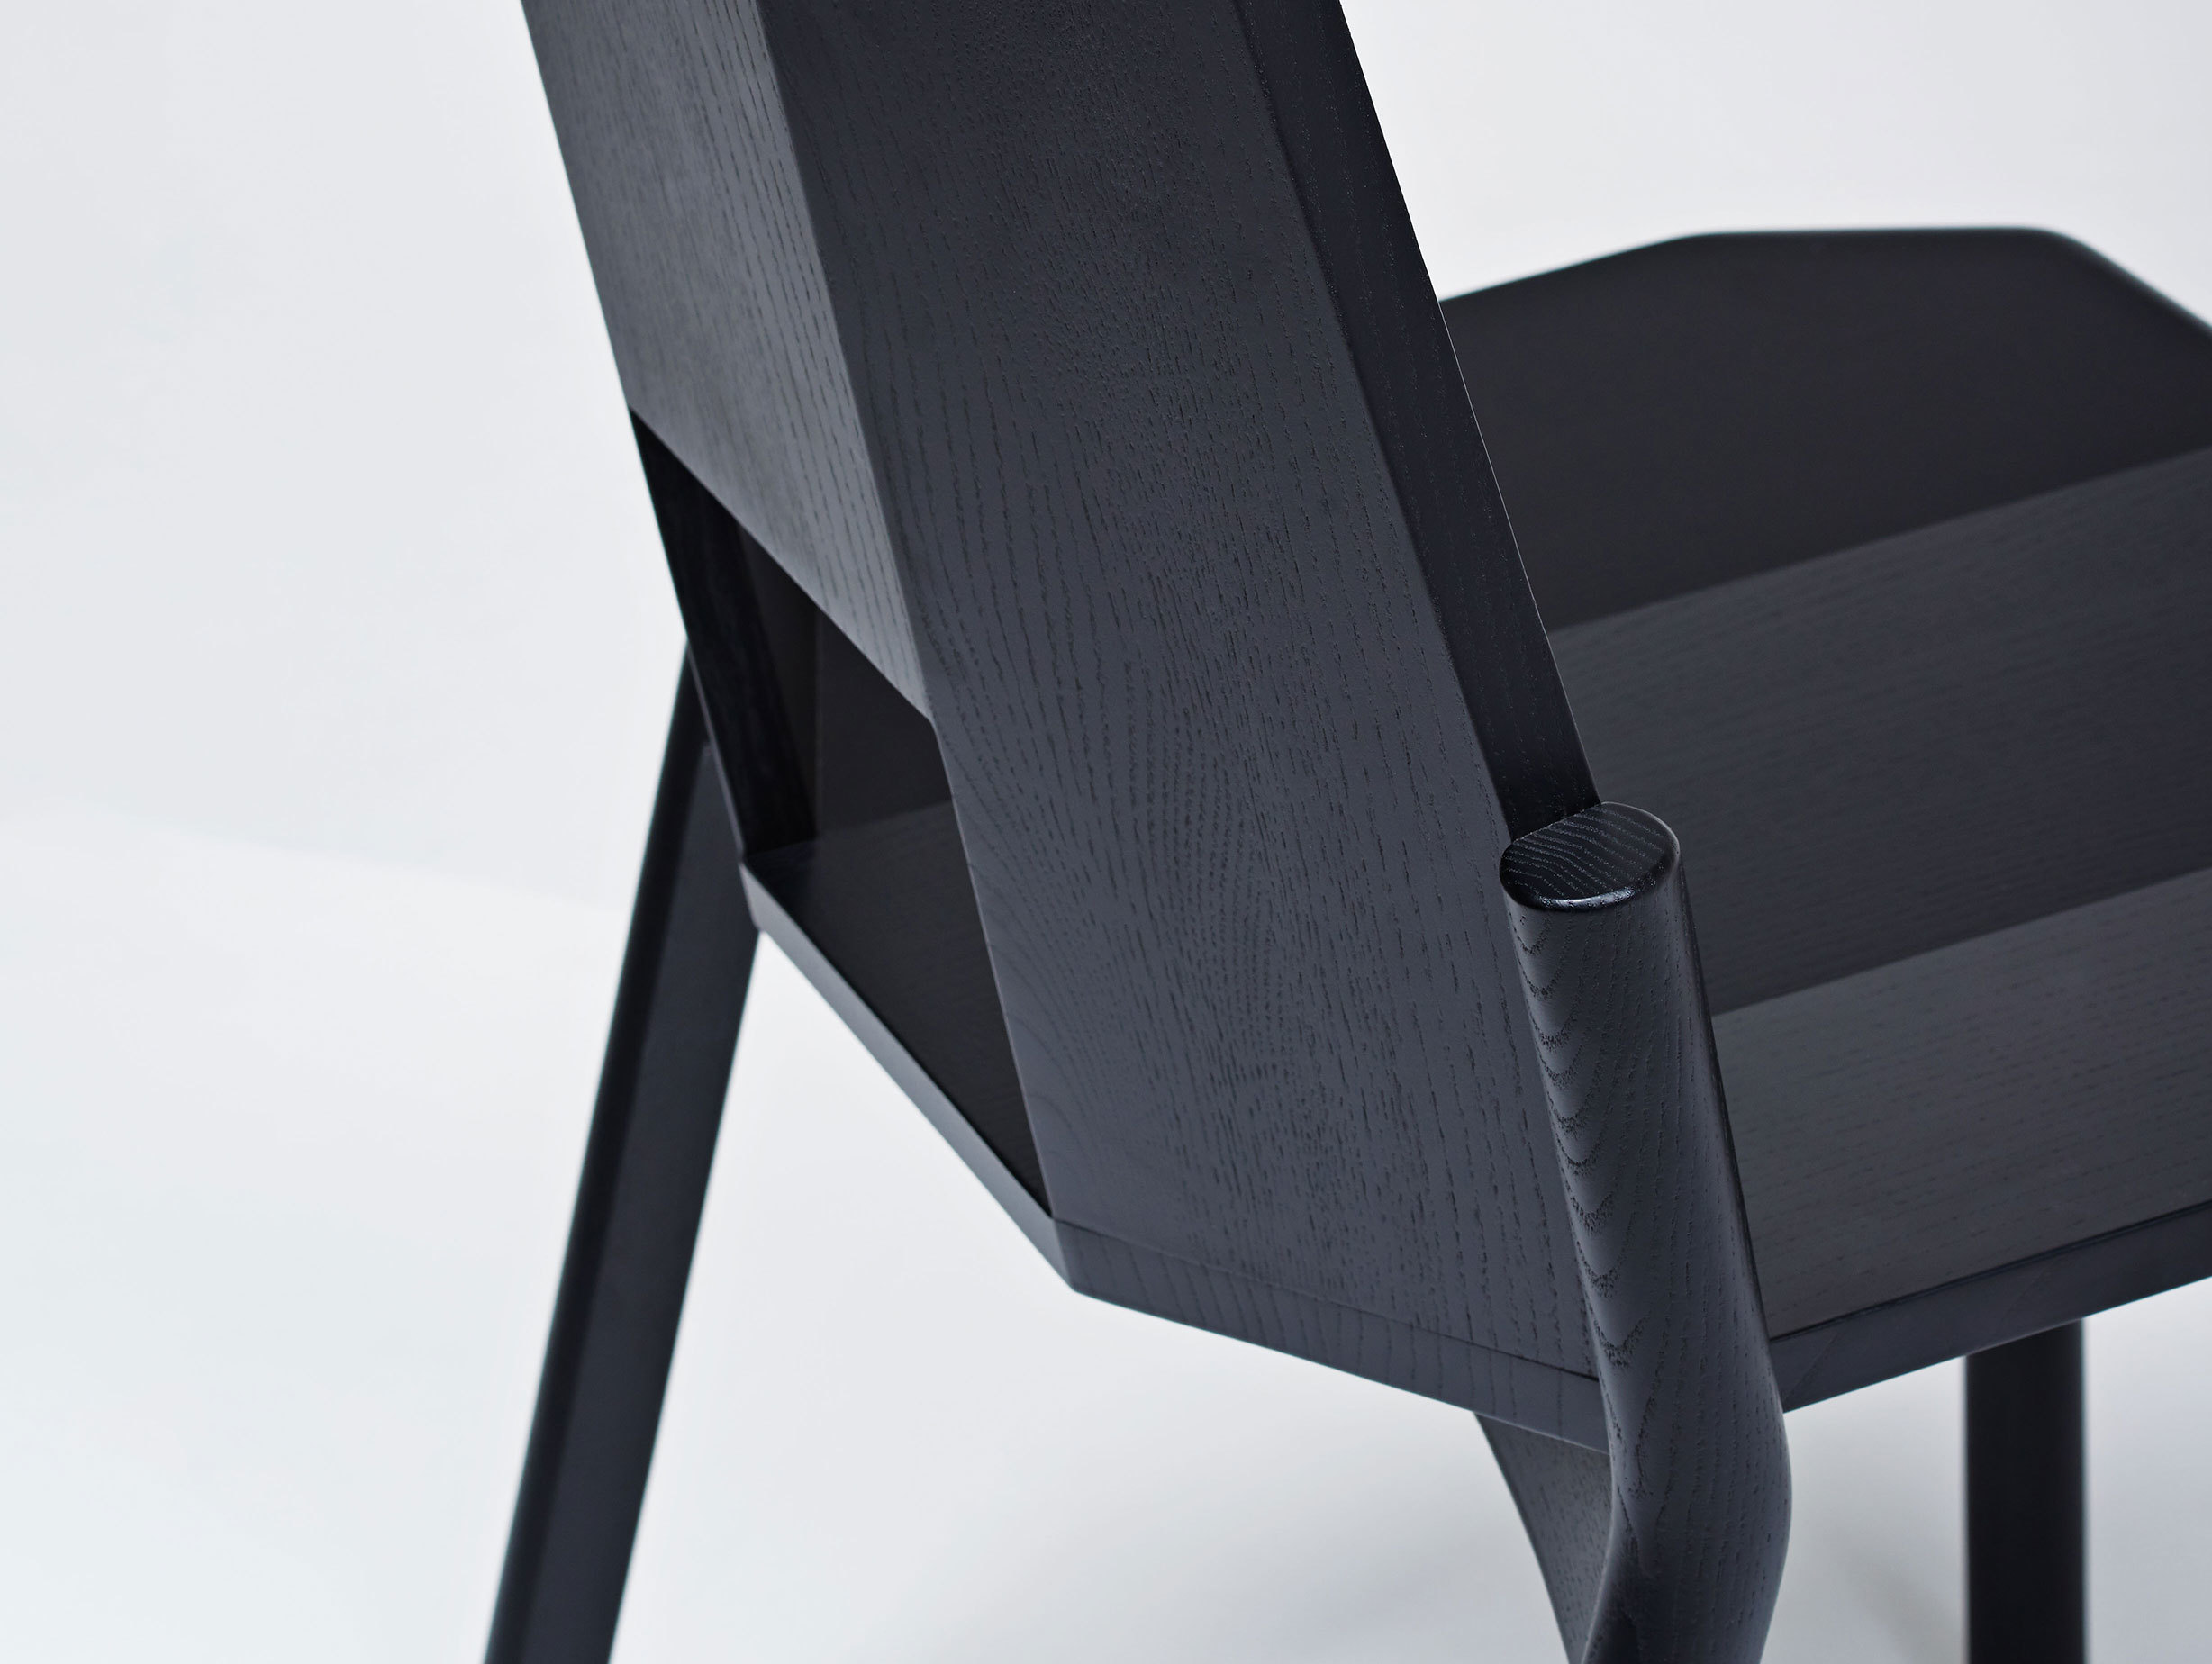 Mattiazzi Tronco Chair Black Detail Industrial Facility